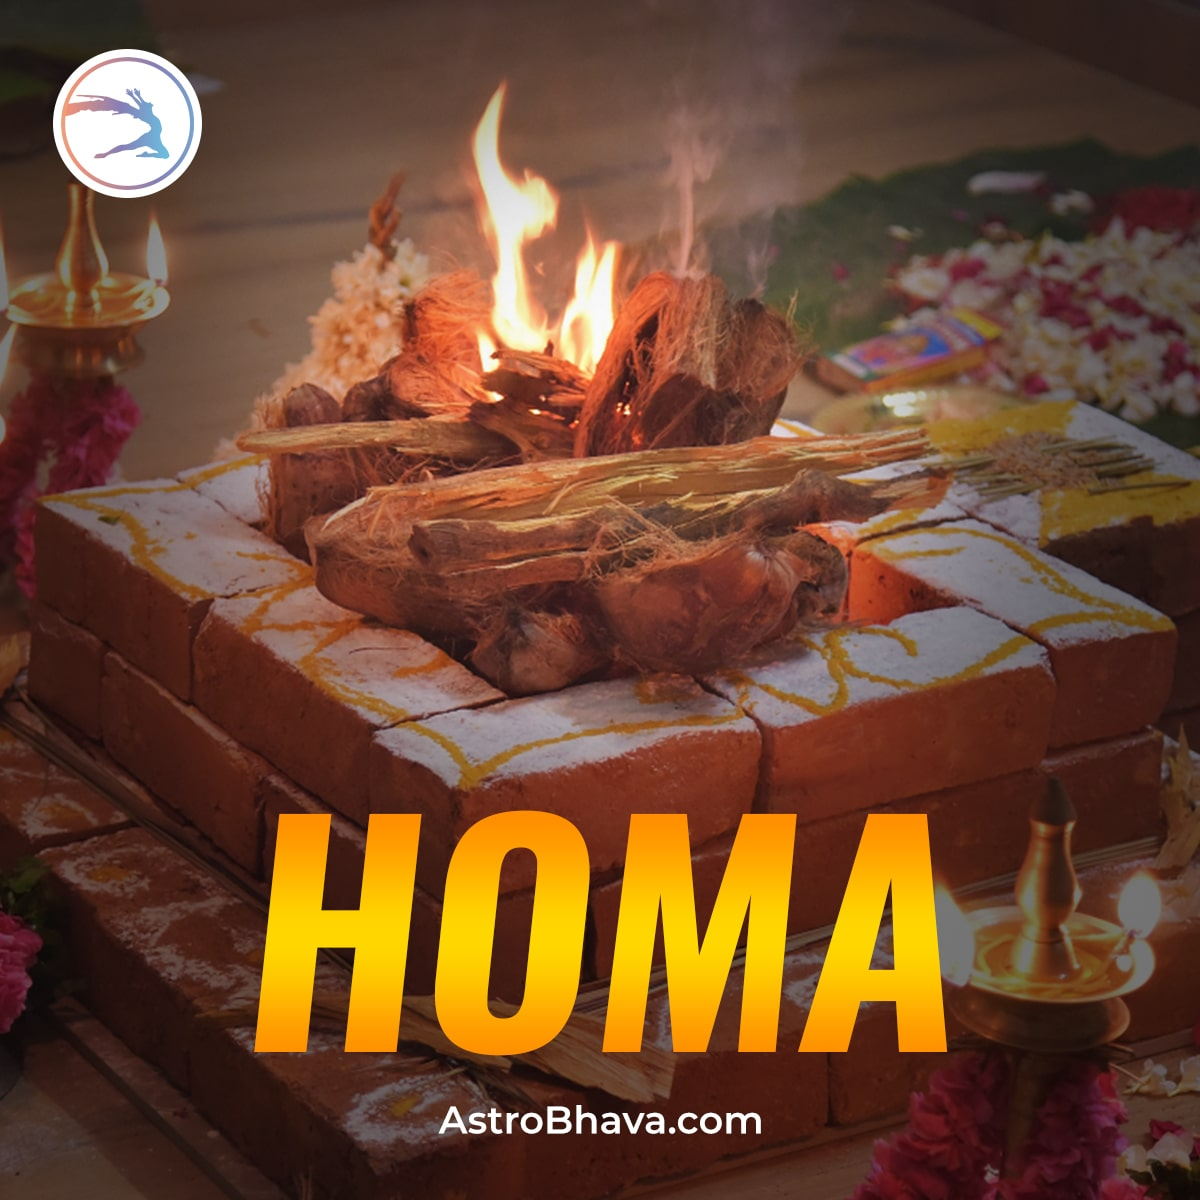 AstroBhava's Authentic and Traditional Vedic Homa Services Conducted Online with LIVE Telecast